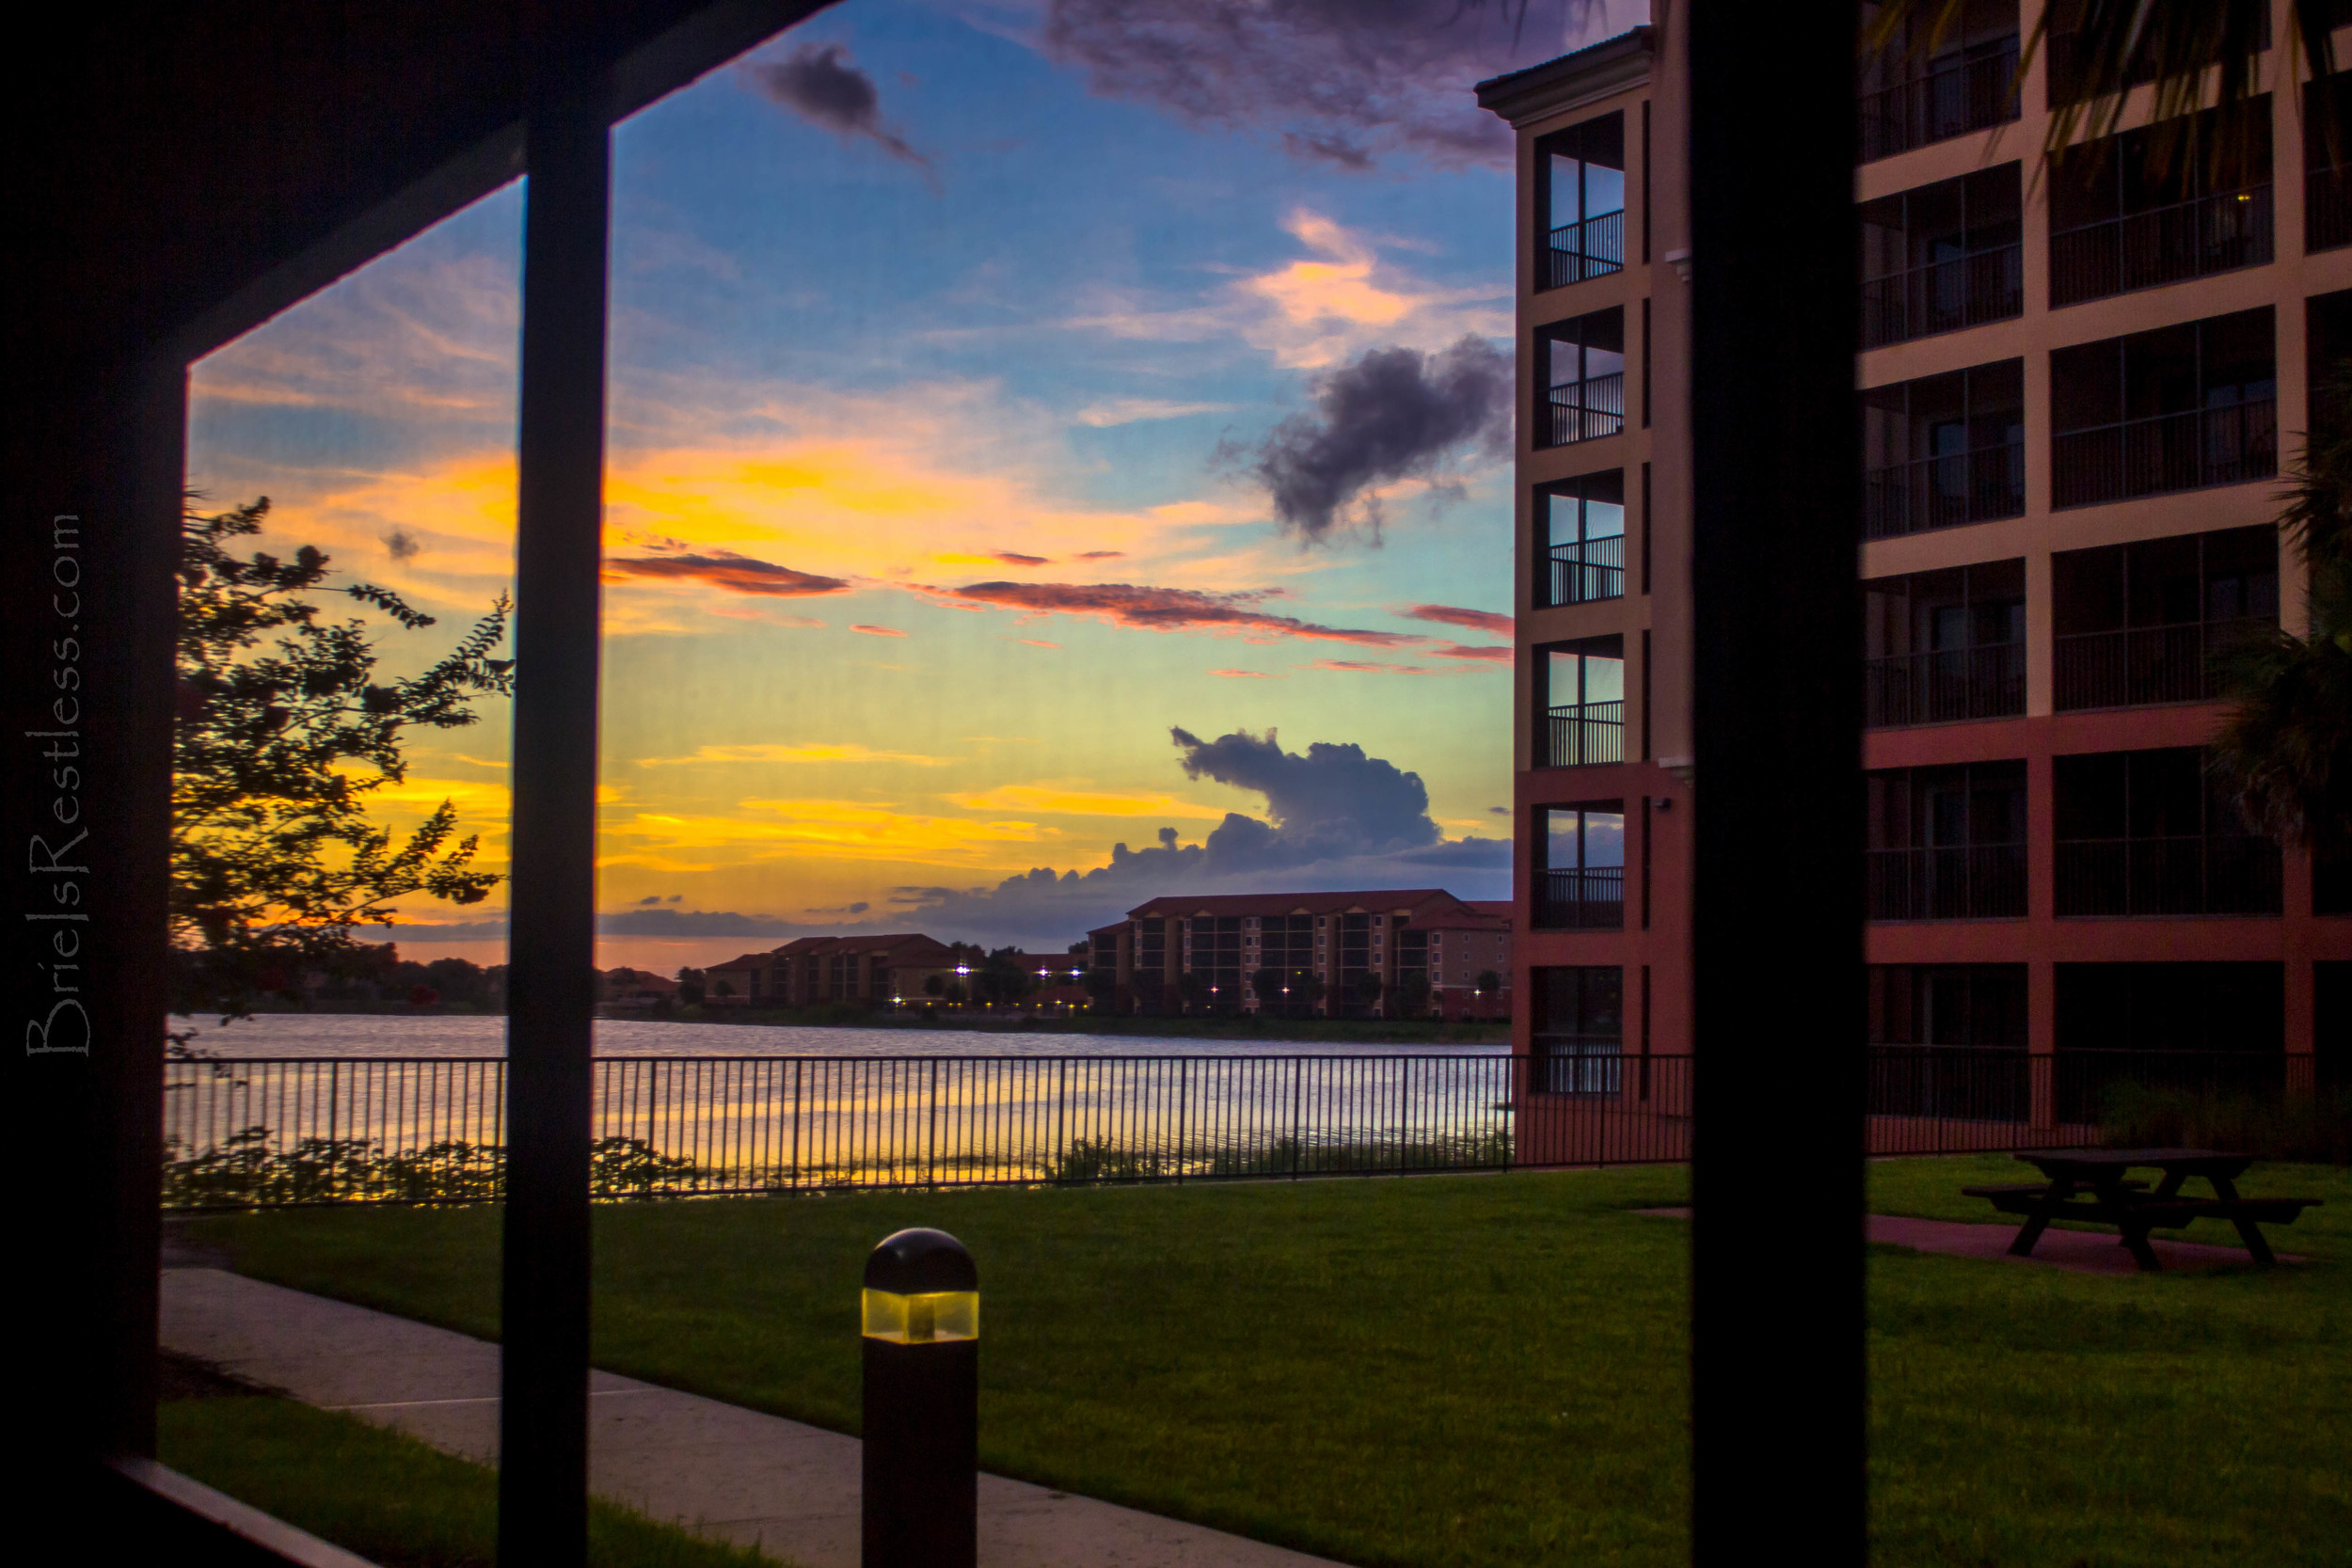 Sunset at Westgate Resorts - Orlando Florida - June 2015 (1 of 1)-2.jpg